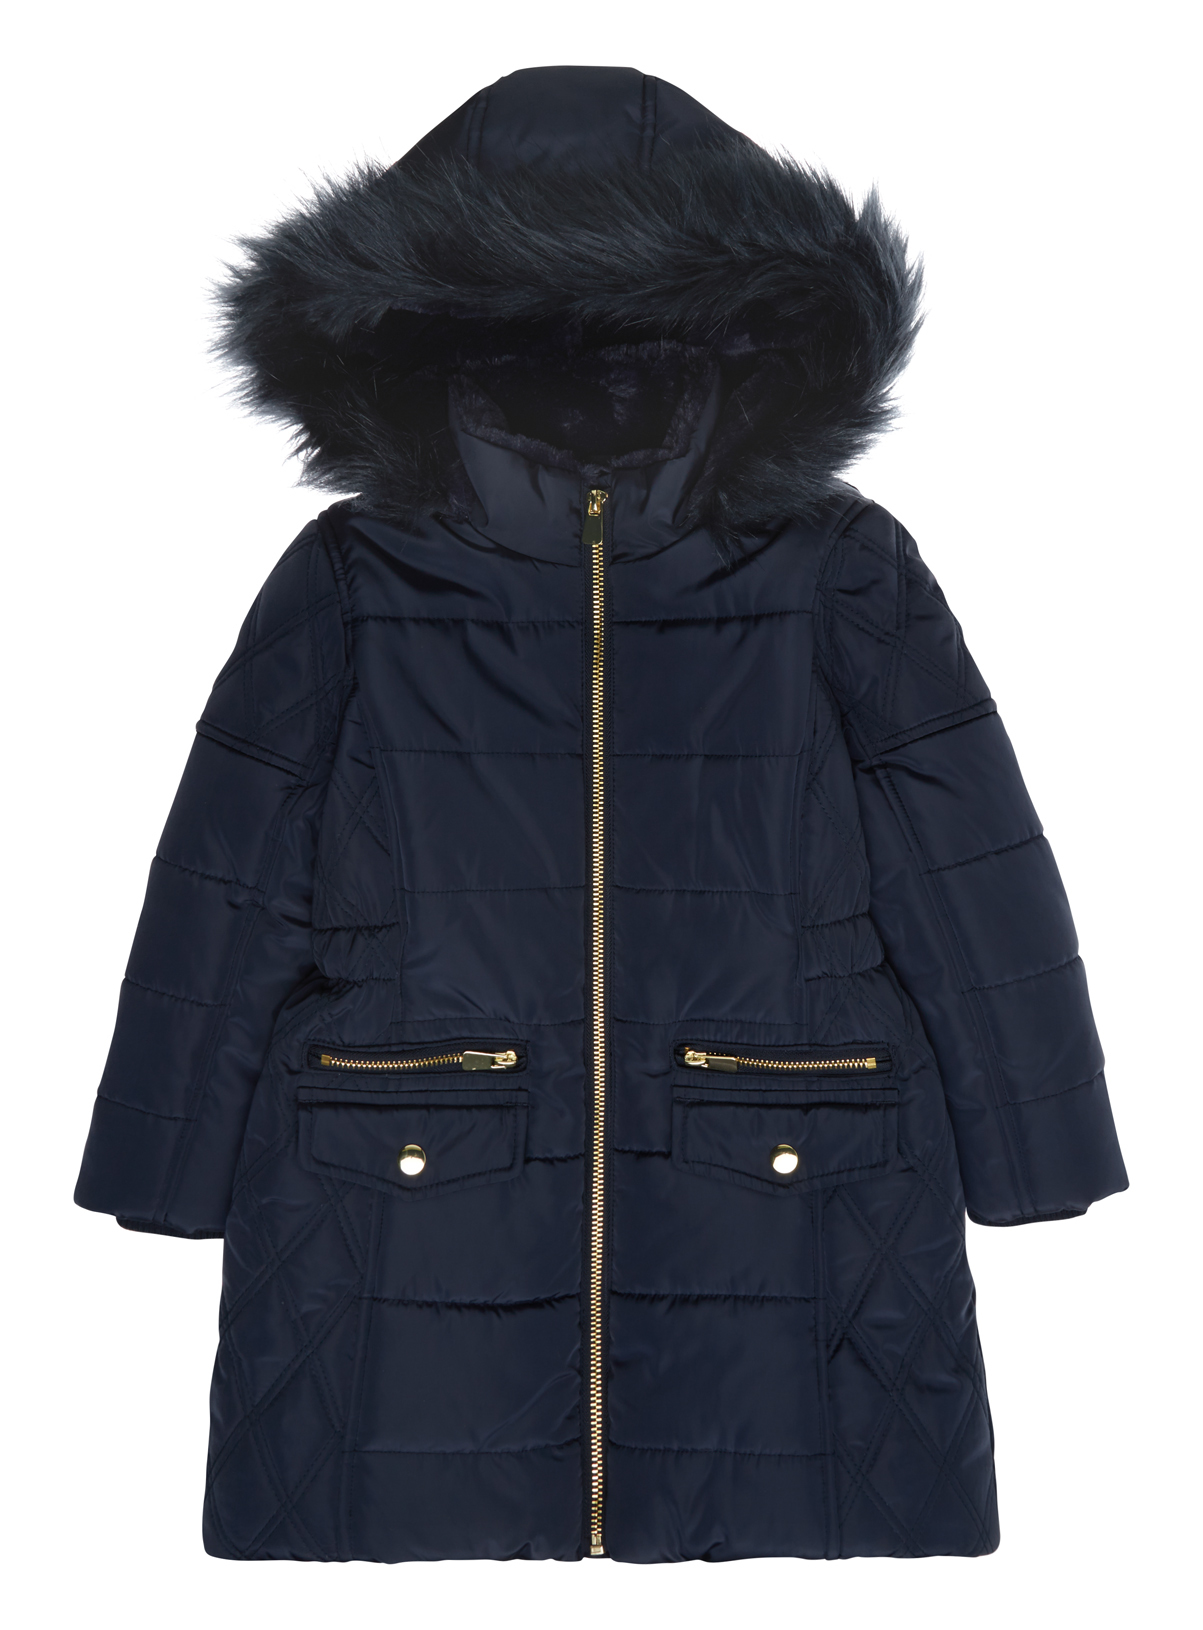 All Girl's Clothing Girls Navy Fur Lined Puffa Coat (3-16 years ...